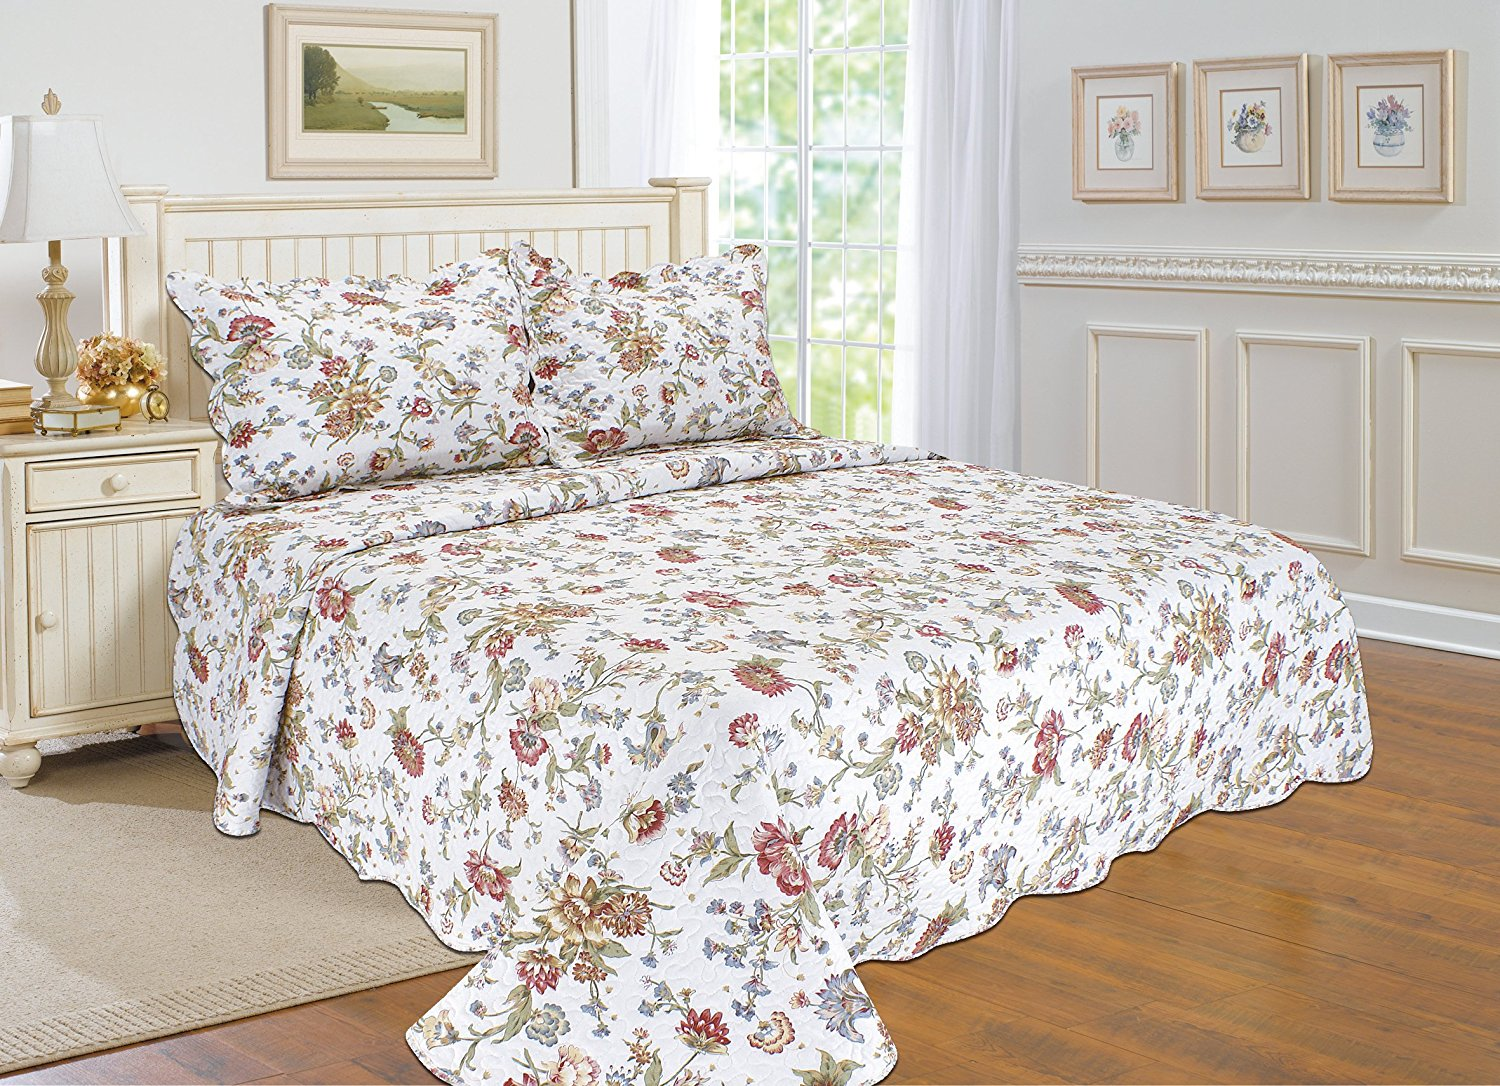 All for You 2pc Reversible Quilt Set, Bedspread, and Coverlet with Flower Prints-3... by All For You Home